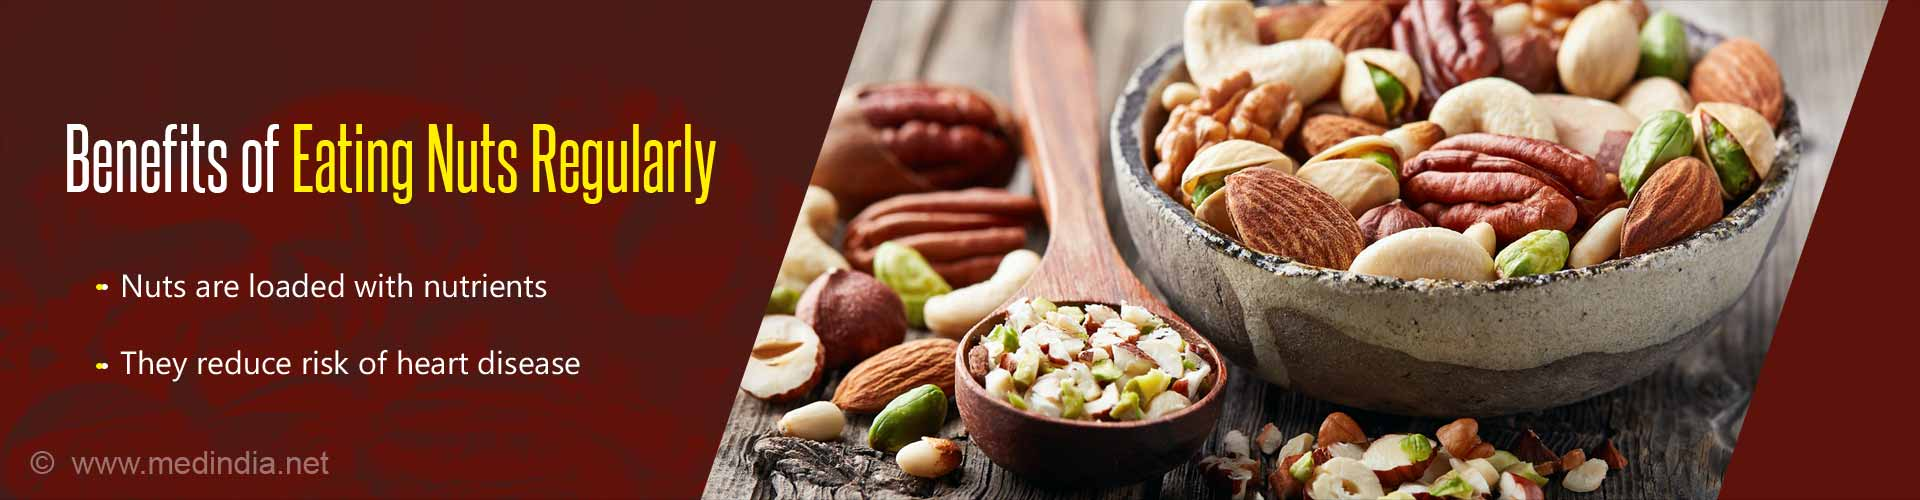 Benefits of Eating Nuts Regularly